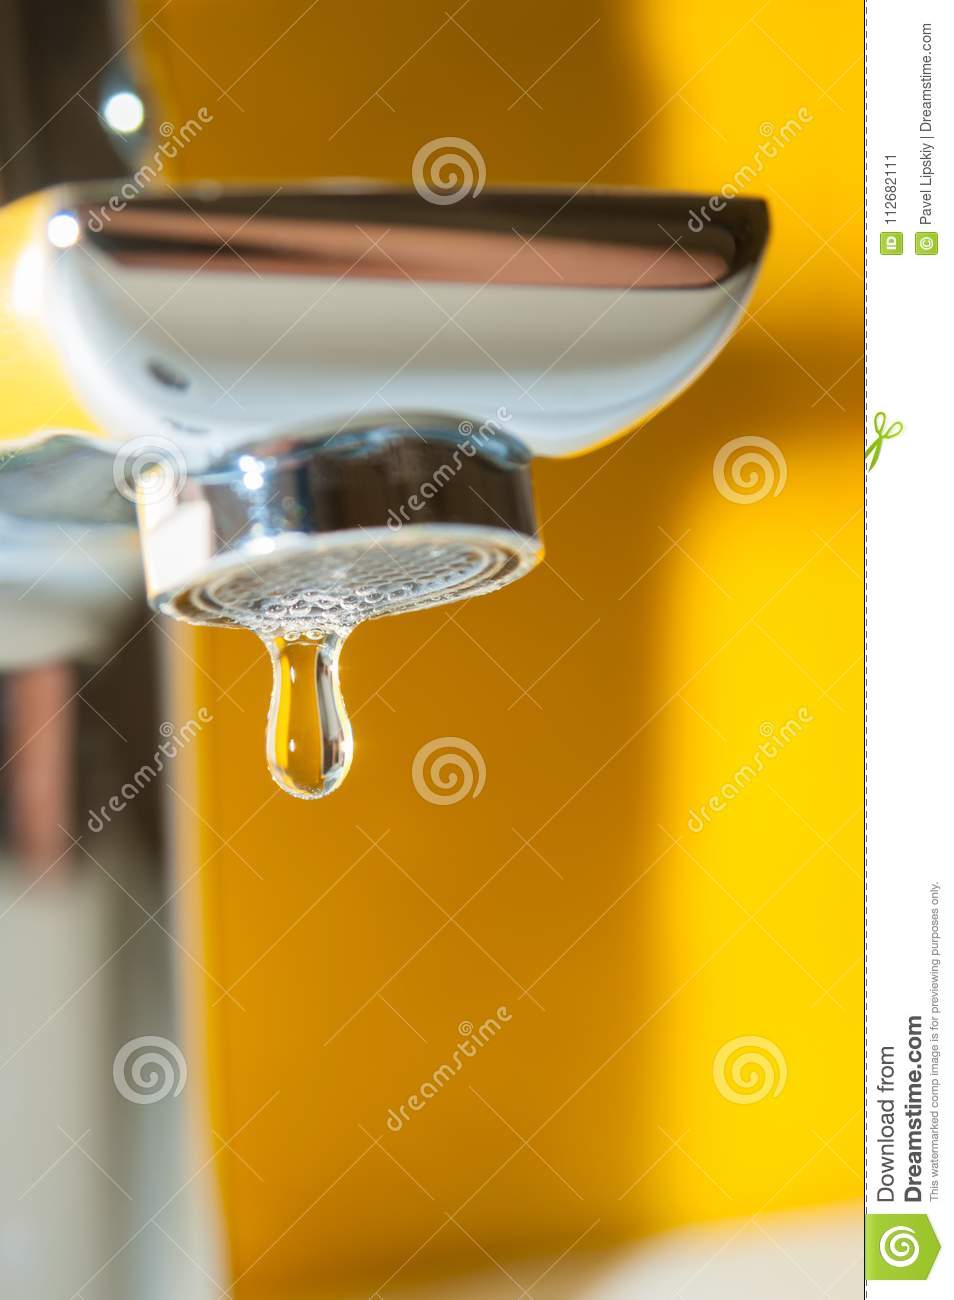 Faucet With Water Drop On Yellow Background Stock Image - Image of ...